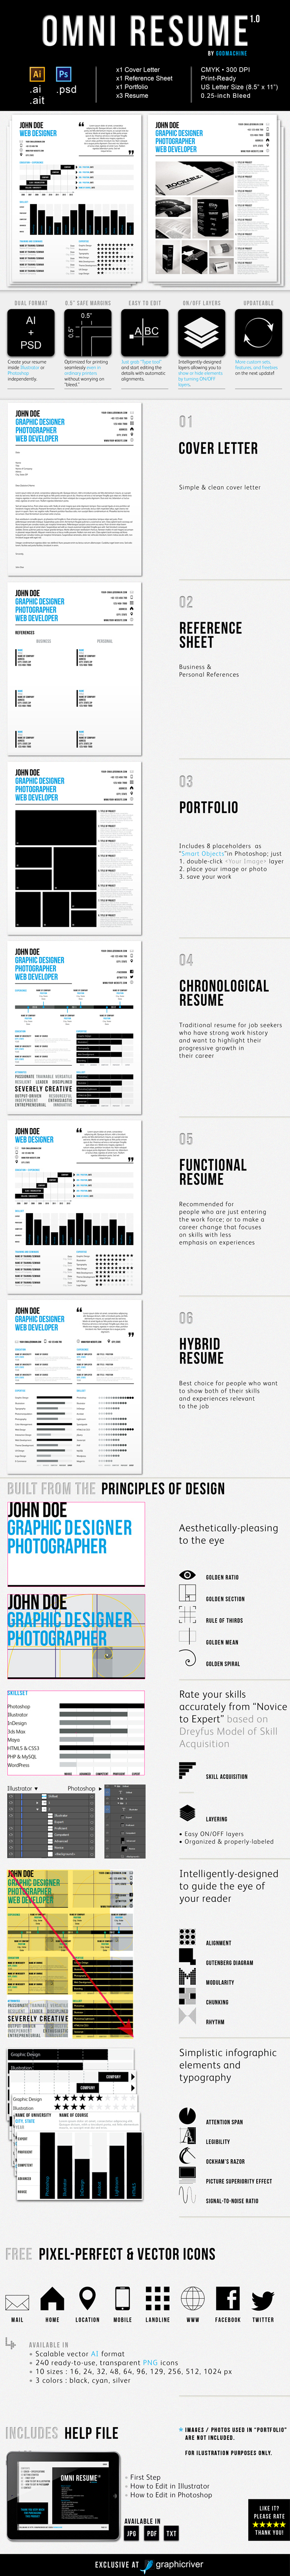 Famous 1 Year Experience Resume In Java J2ee Tall 10 Best Resume Samples Flat 10 Tips For Writing A Good Resume 10 Window Envelope Template Young 100 Dollar Bill Template Orange2 Page Resume Layout Resume, Galleries And Behance On Pinterest